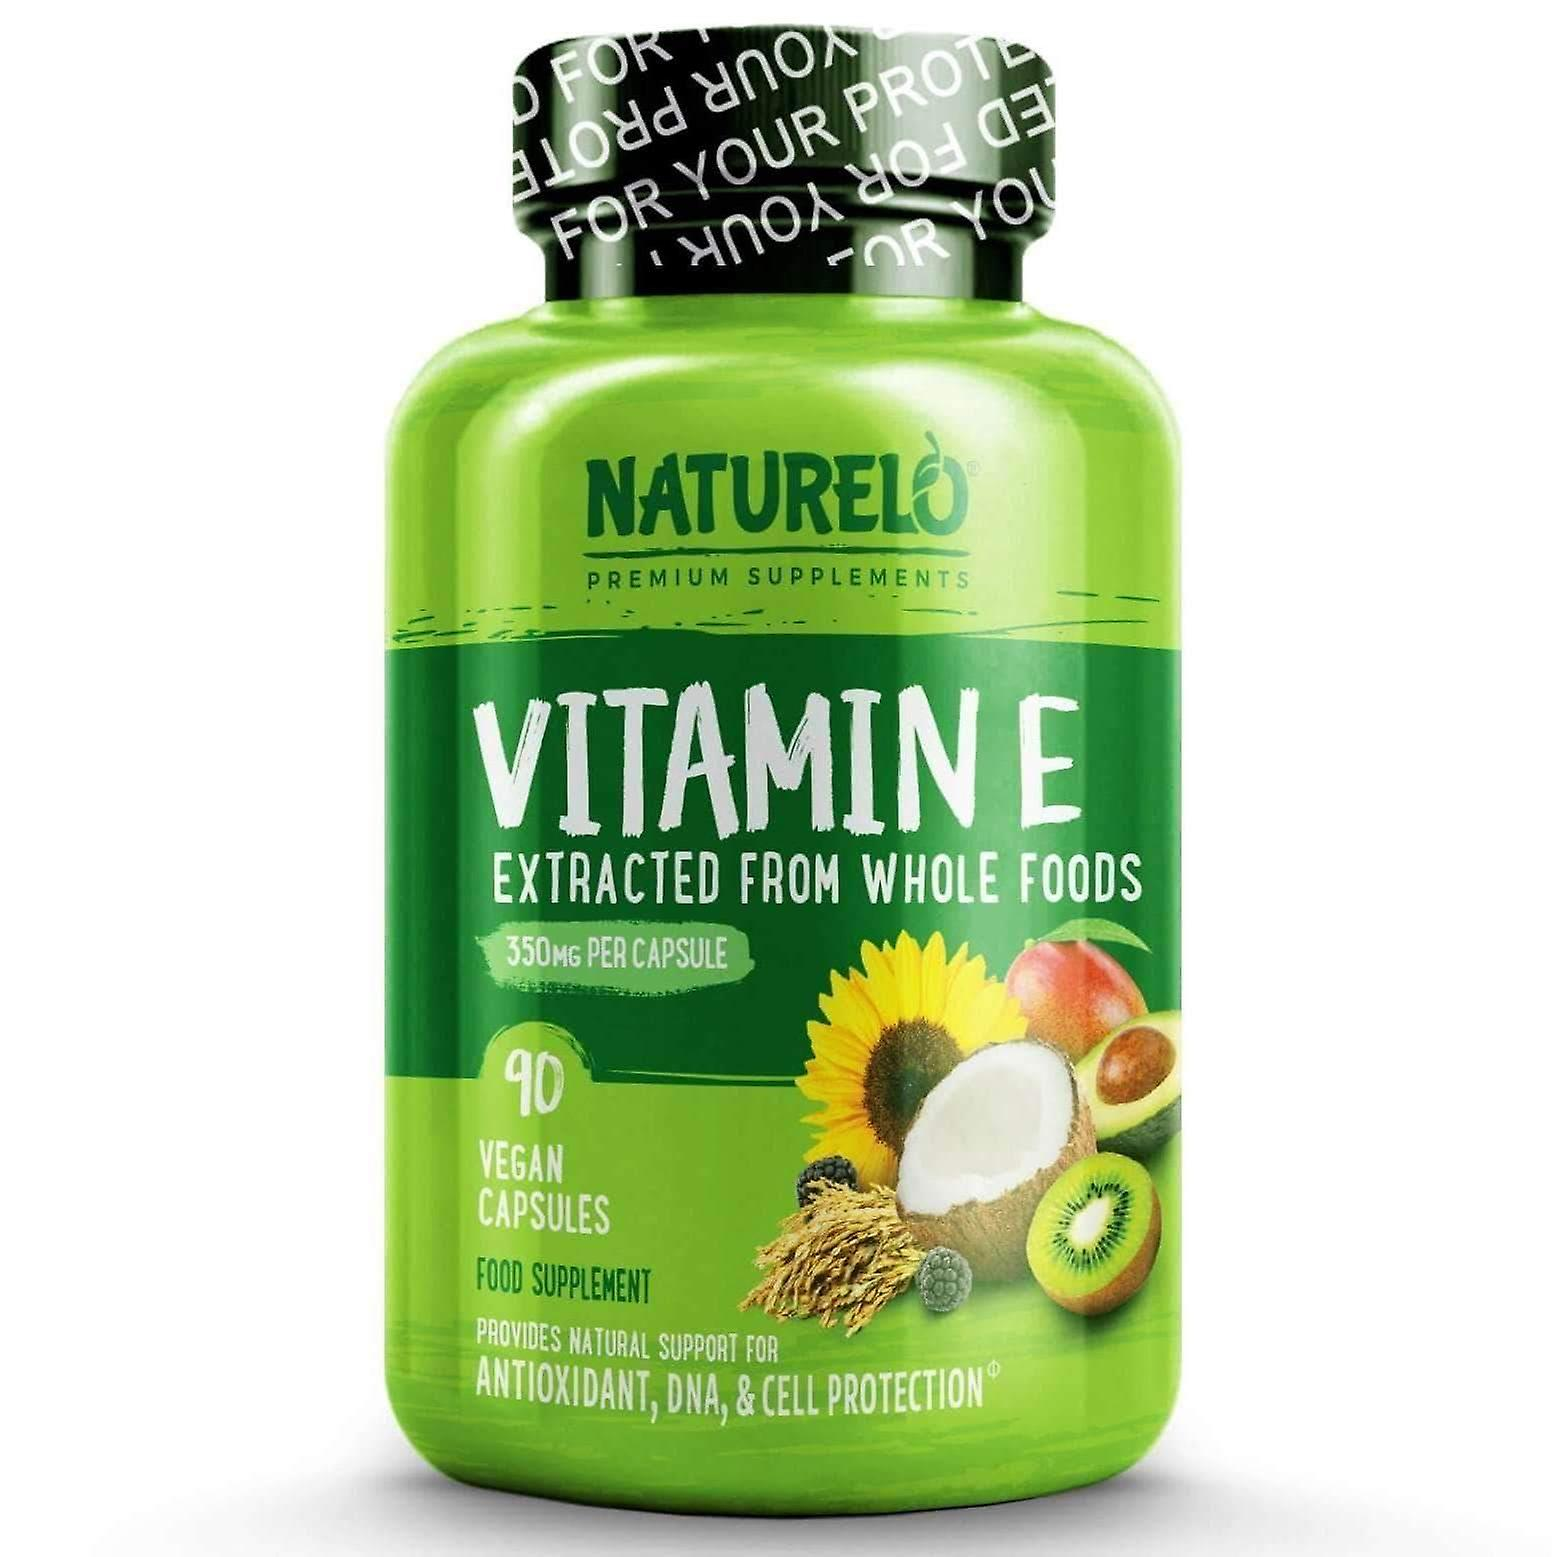 Vitamin e with mixed tocopherols from coconut, sunflower & rice bran - 90 caps | 3 month supply (vegan)